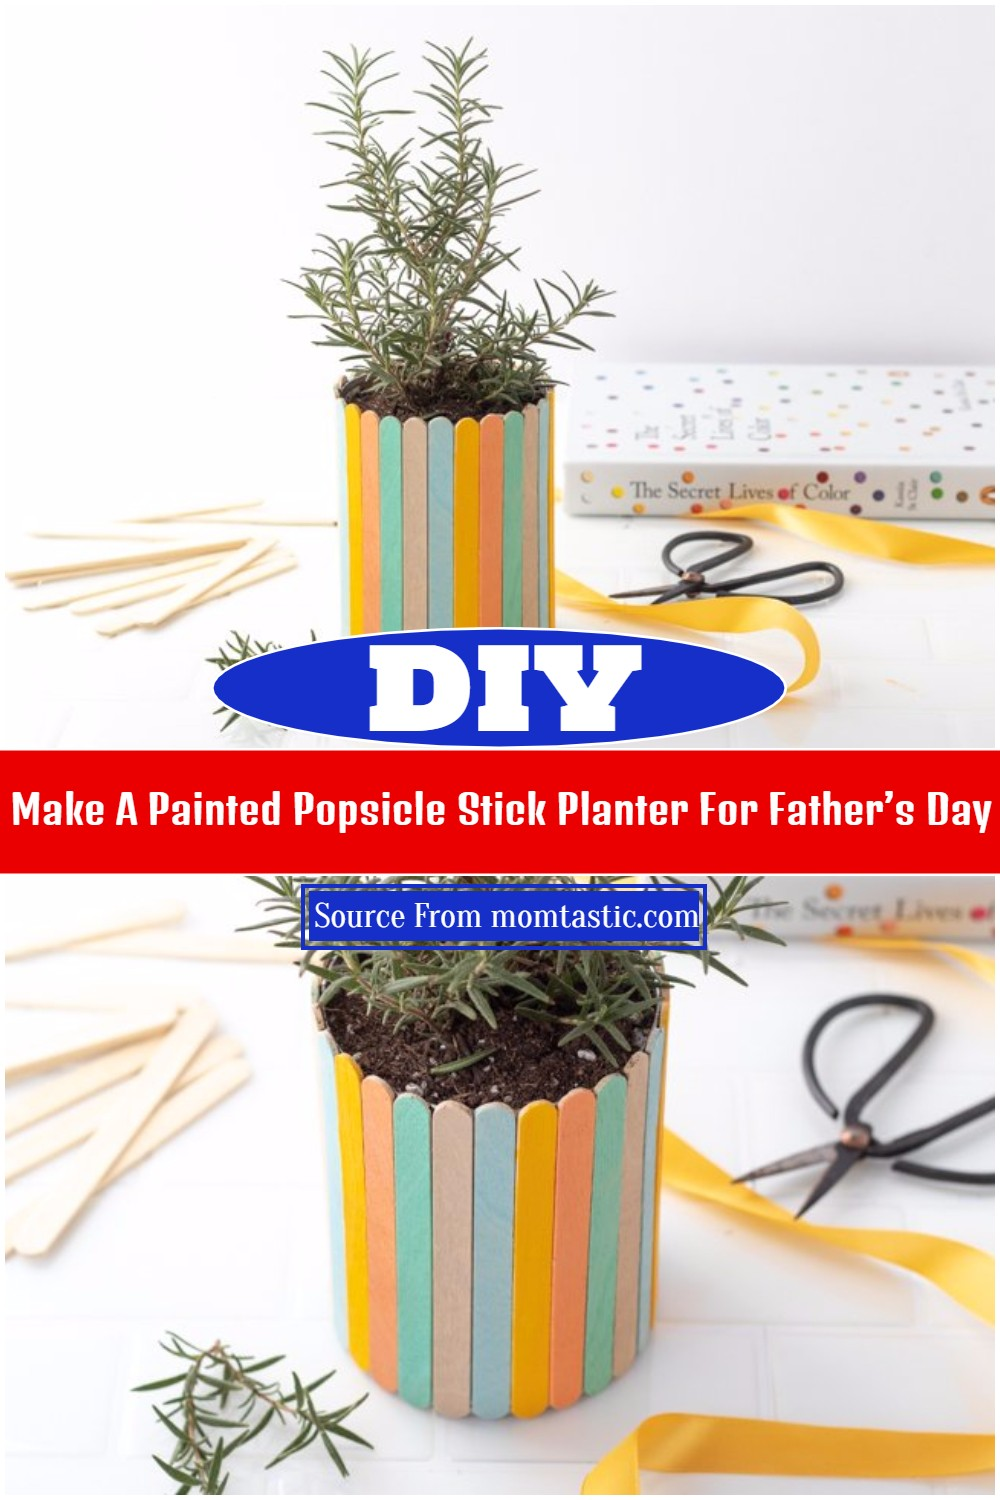 Make A Painted DIY Popsicle Stick Planter For Father's Day